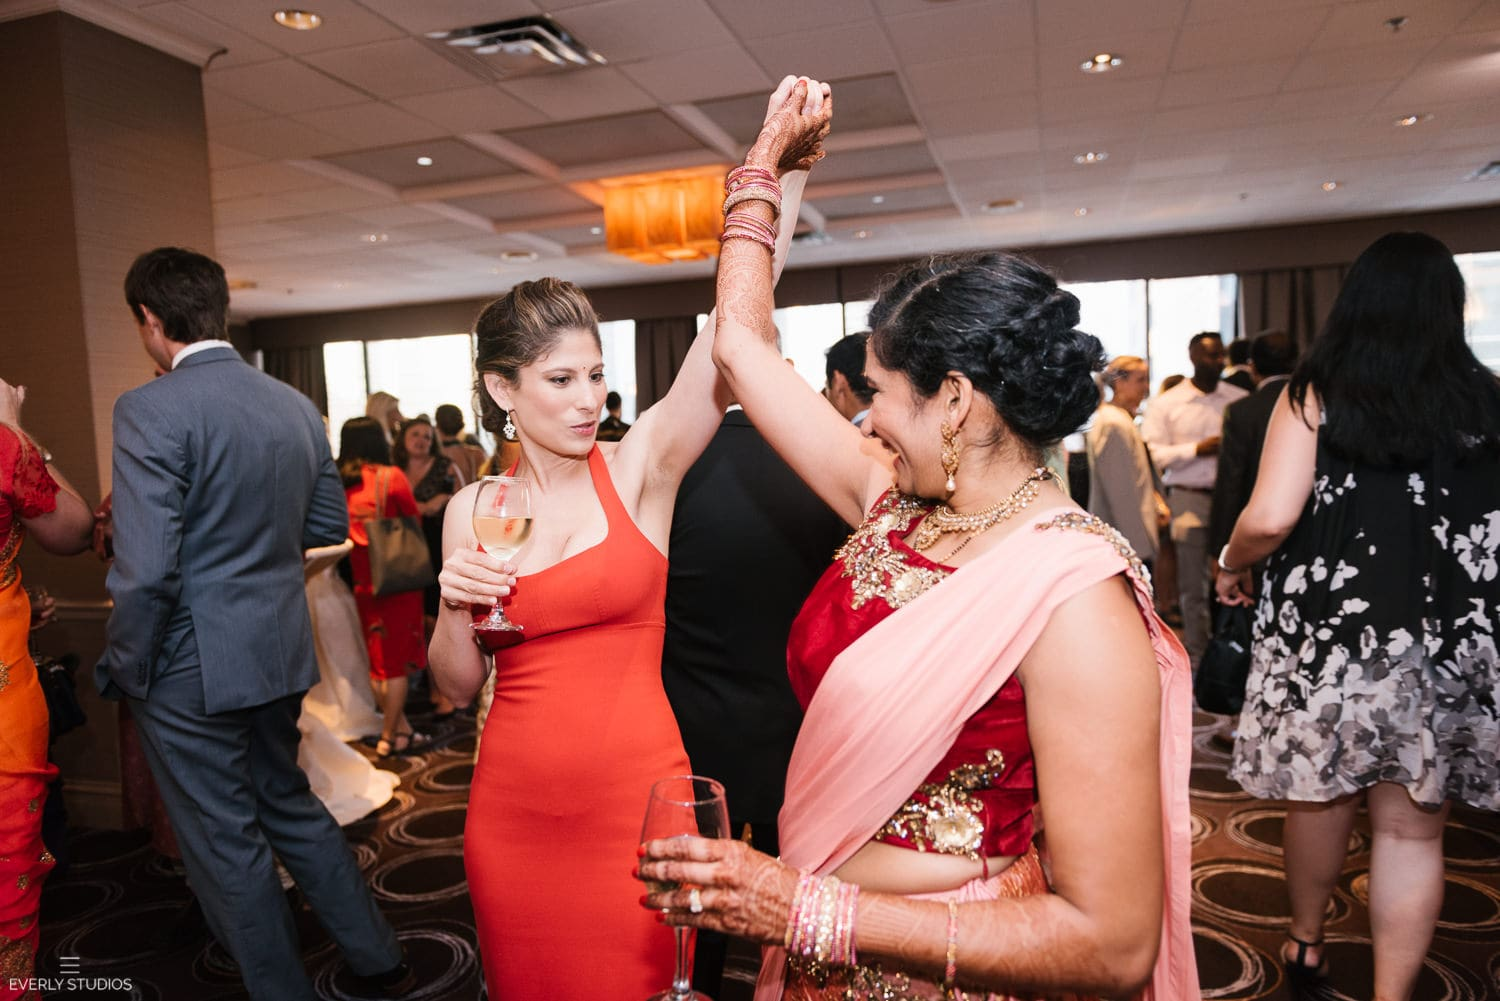 Holiday Inn Chicago Mart Plaza wedding. Photography by Indian wedding photographer NYC Everly Studios, www.everlystudios.com